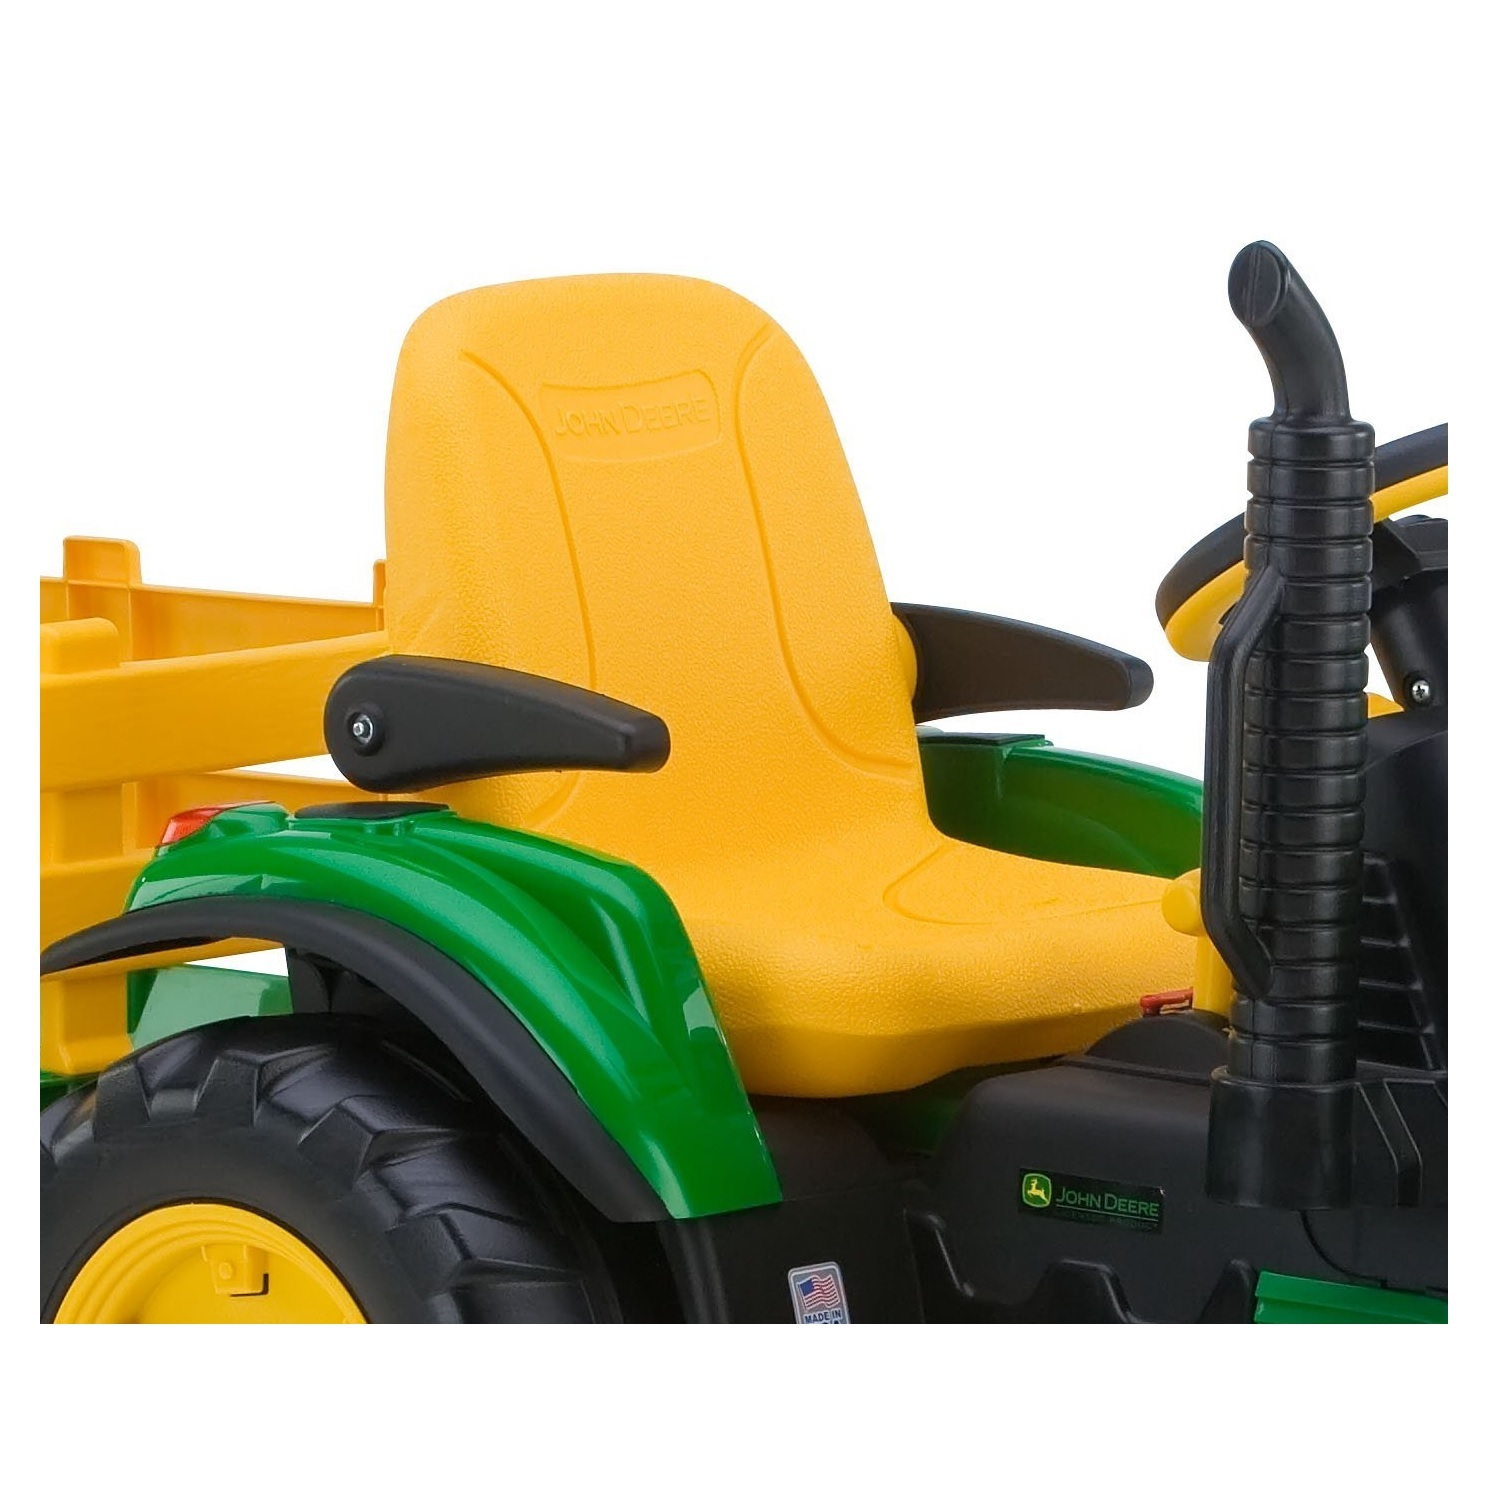 Power Wheels Ride On Tractor : Battery powered tractor kids ride on trailer farm wheels